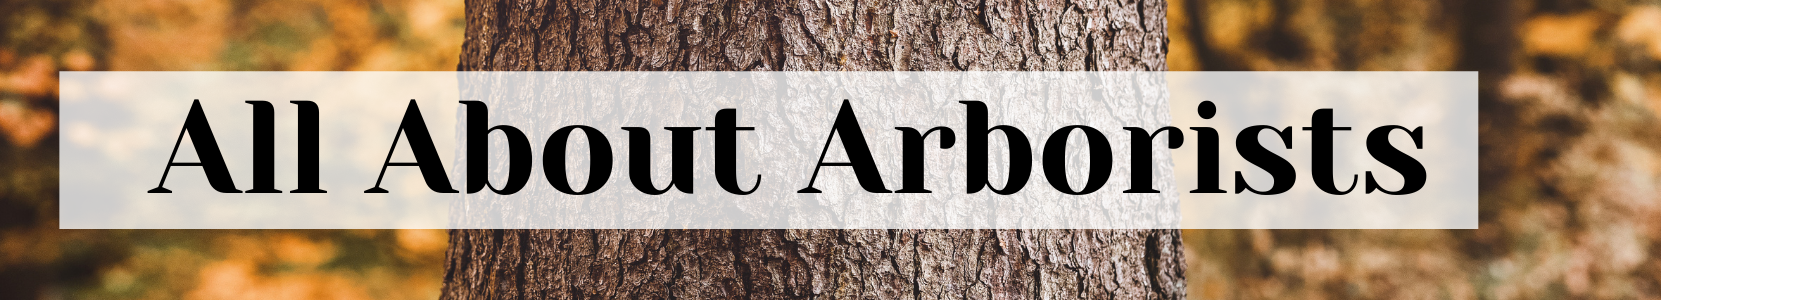 all about arborists urban forest pro